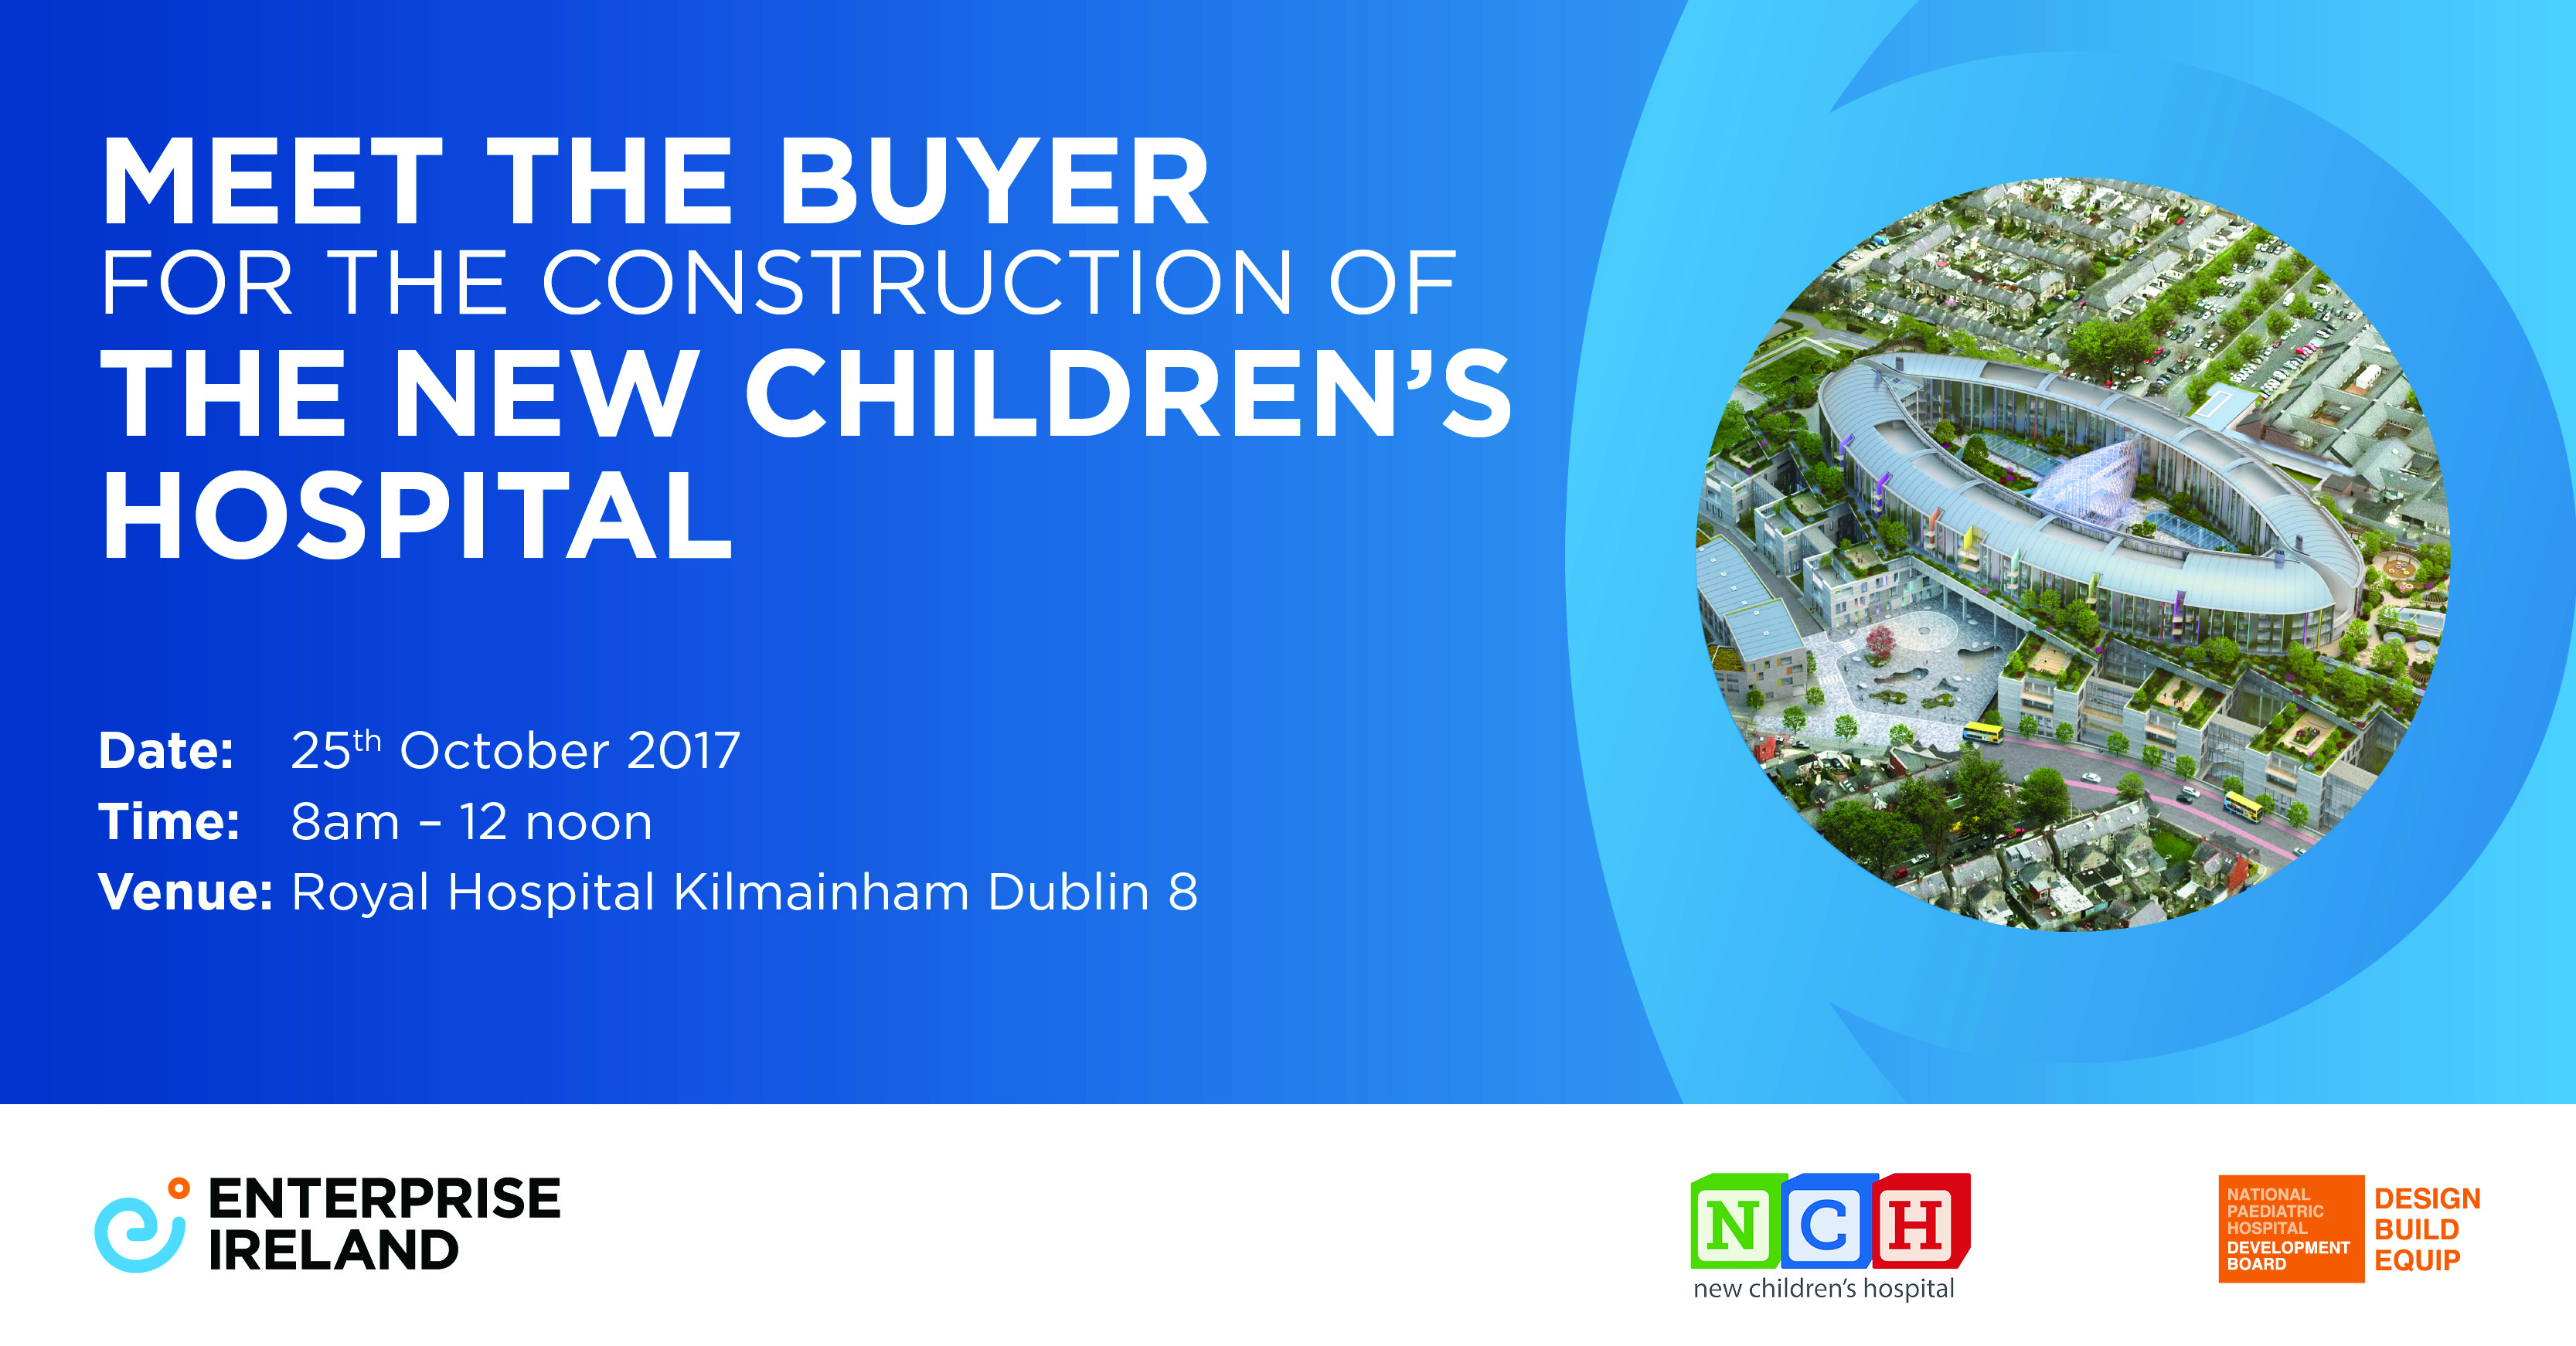 meet the buyer for the construction of the new children's hospital